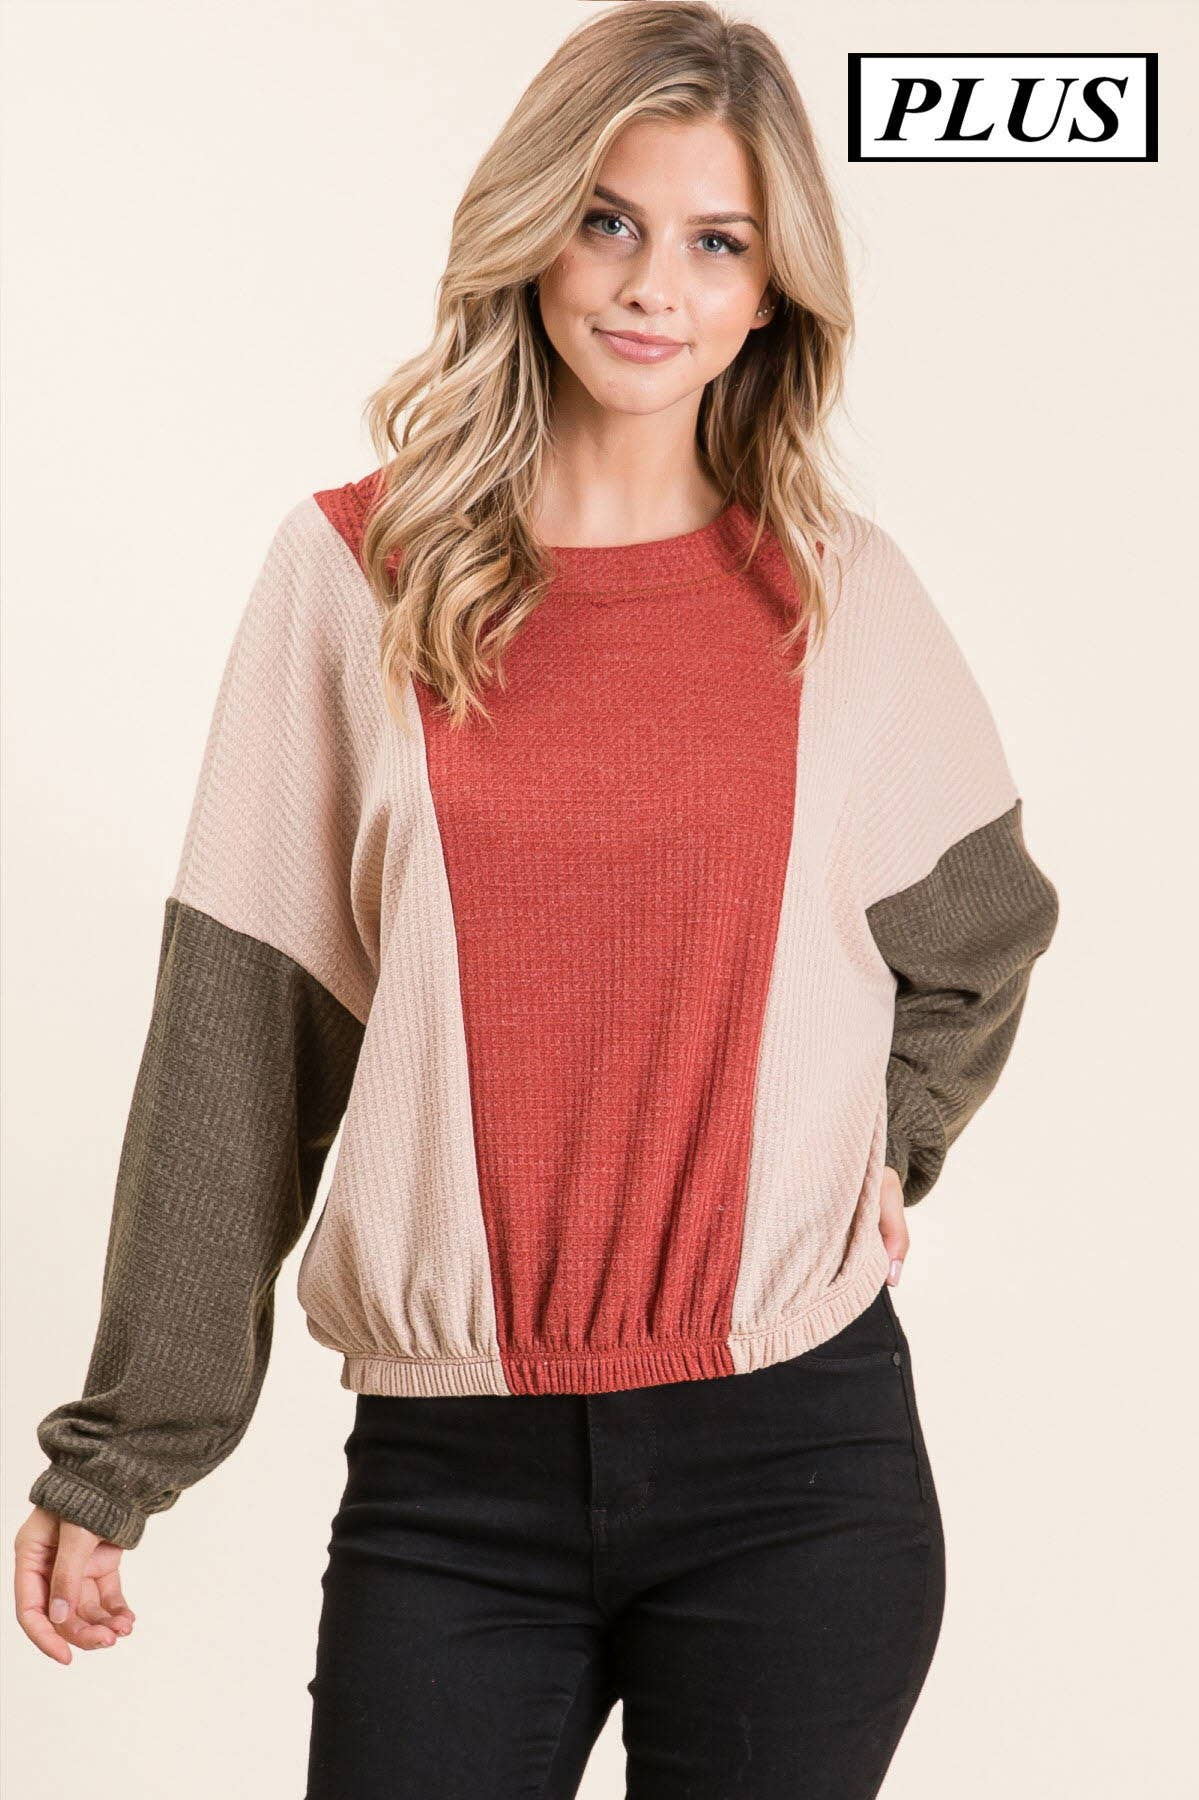 Plus- waffle knit colorblock top